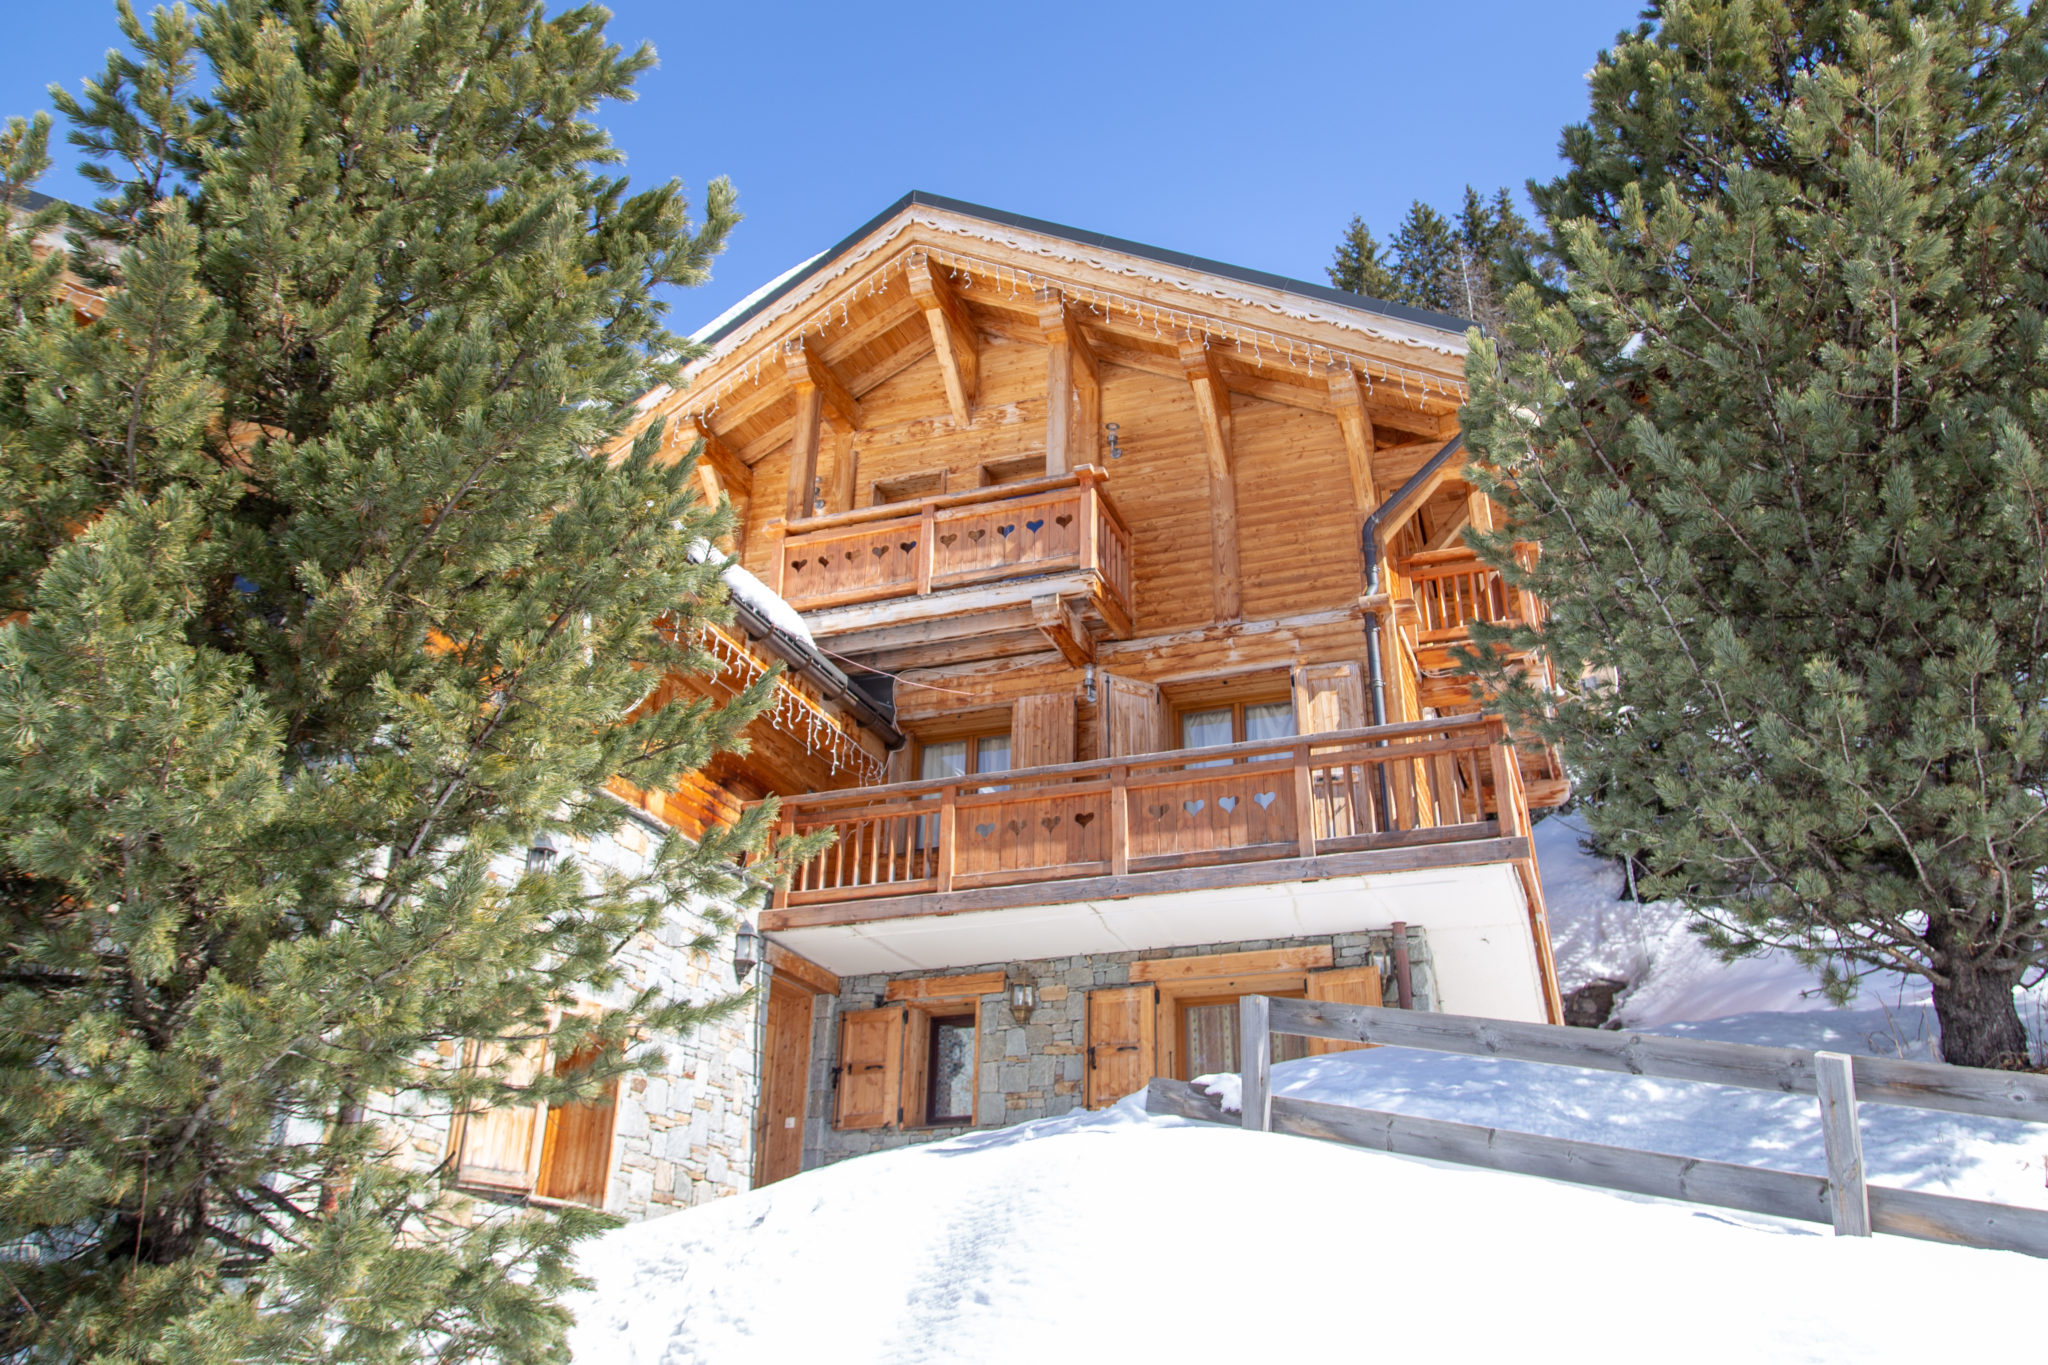 Chalet Lapin: French catered ski chalet in La Plagne 1800